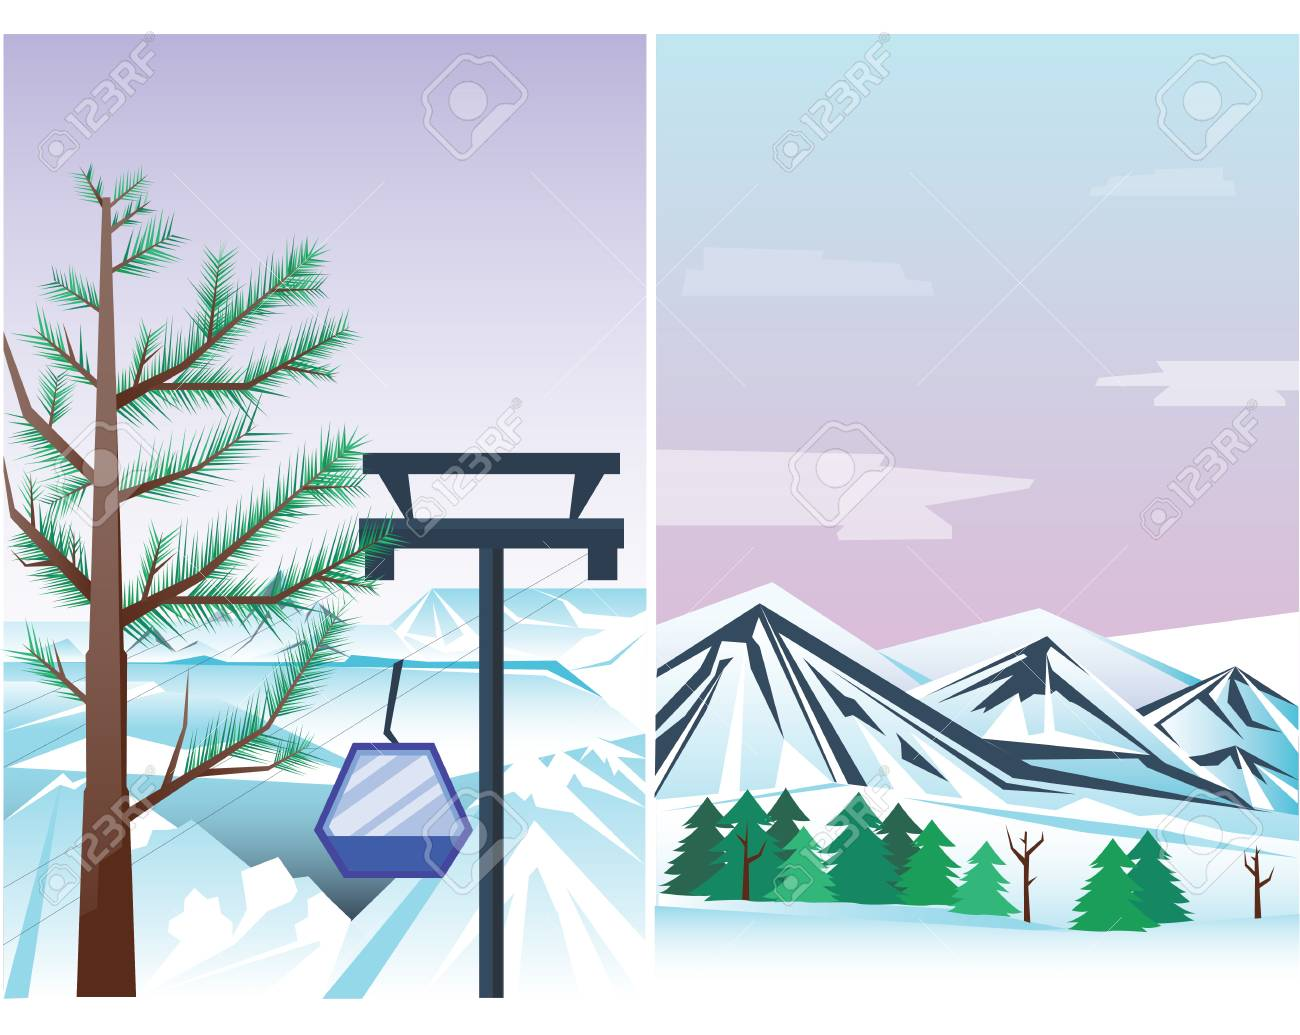 Winter Landscape With A Christmas Tree Mountain Frozen Wallpaper